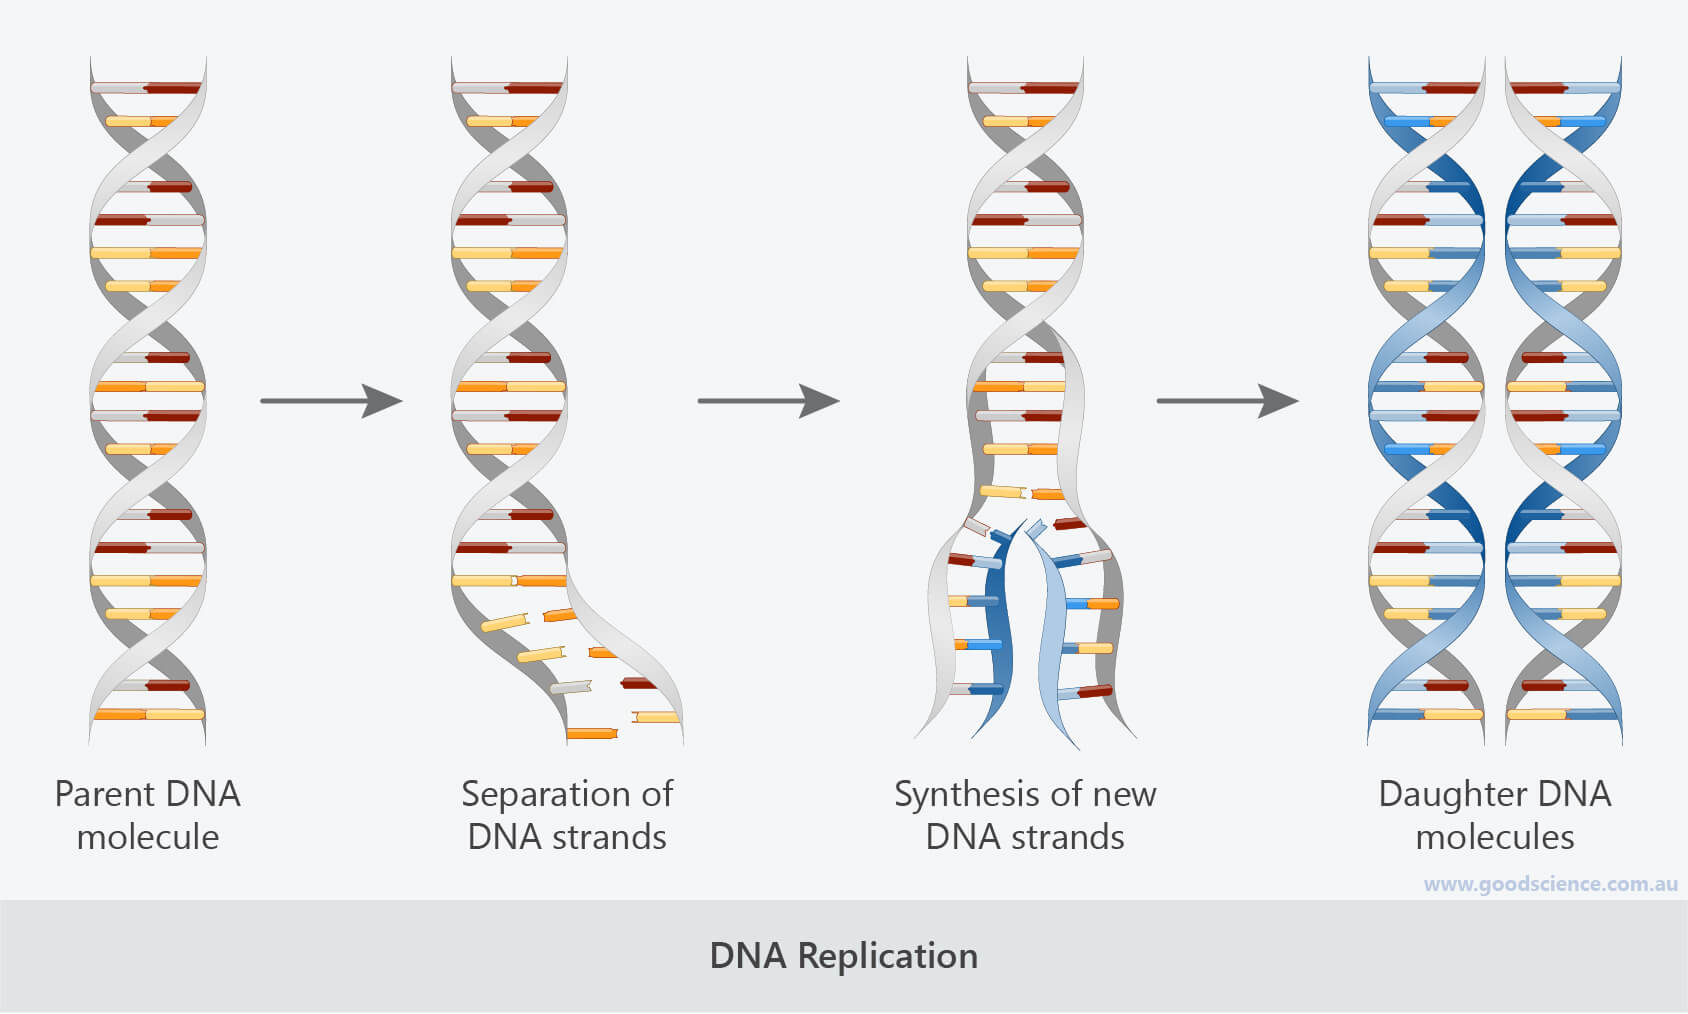 dna replication process